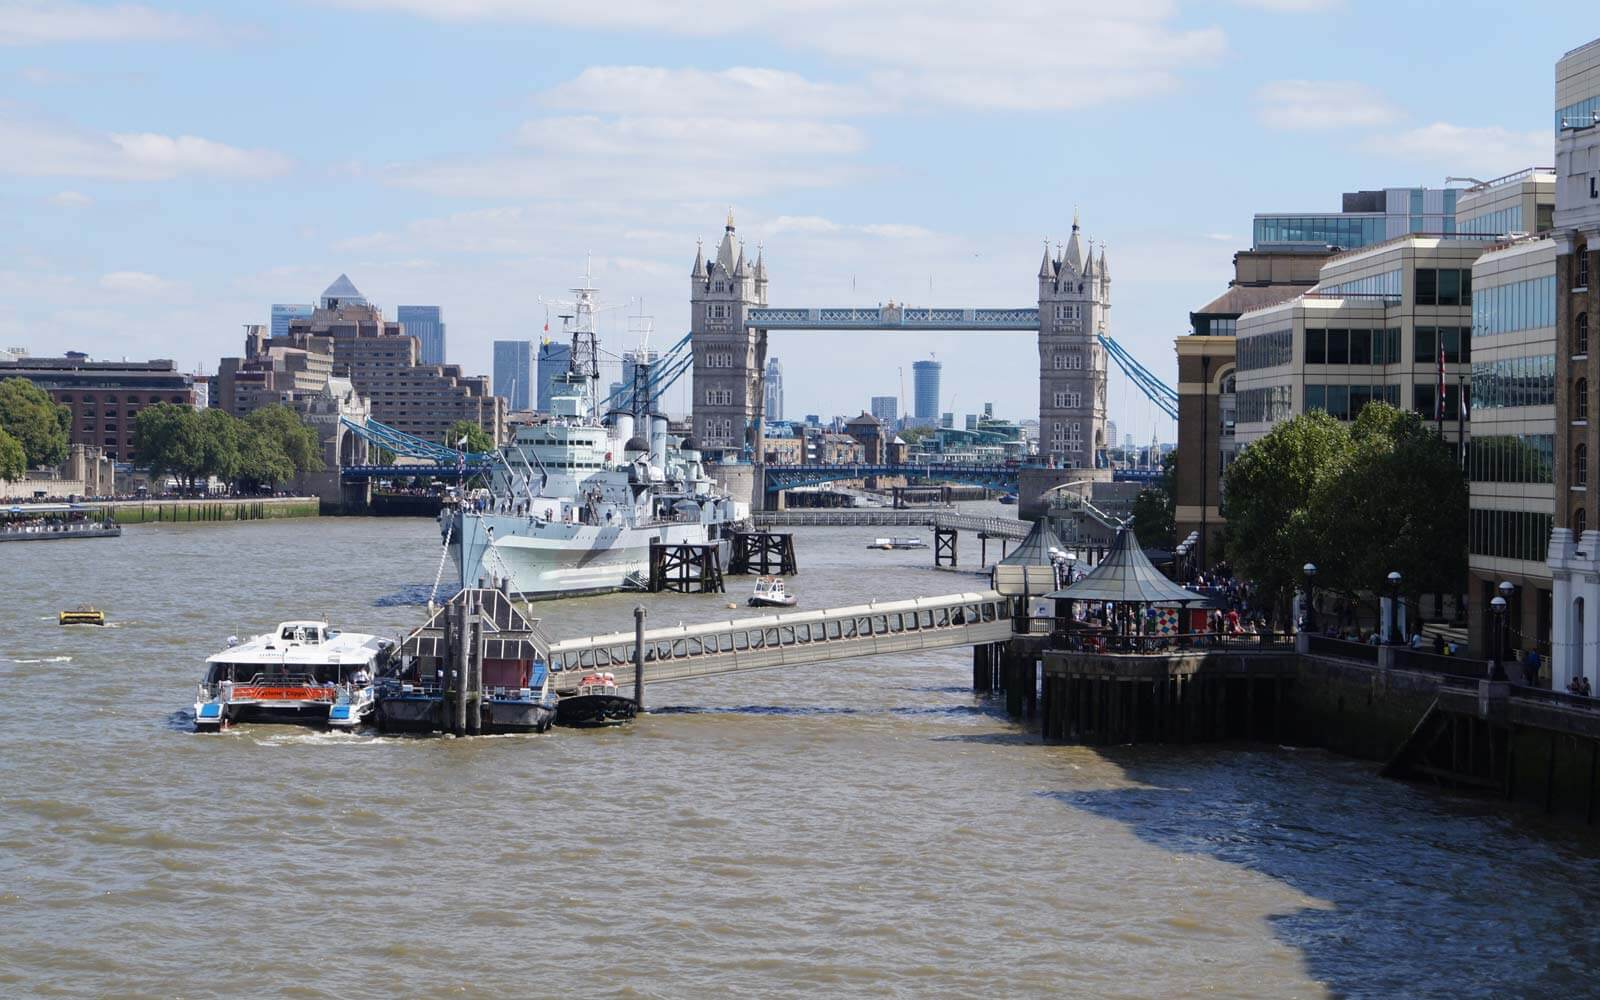 Themse mit Blick auf Tower Bridge in London